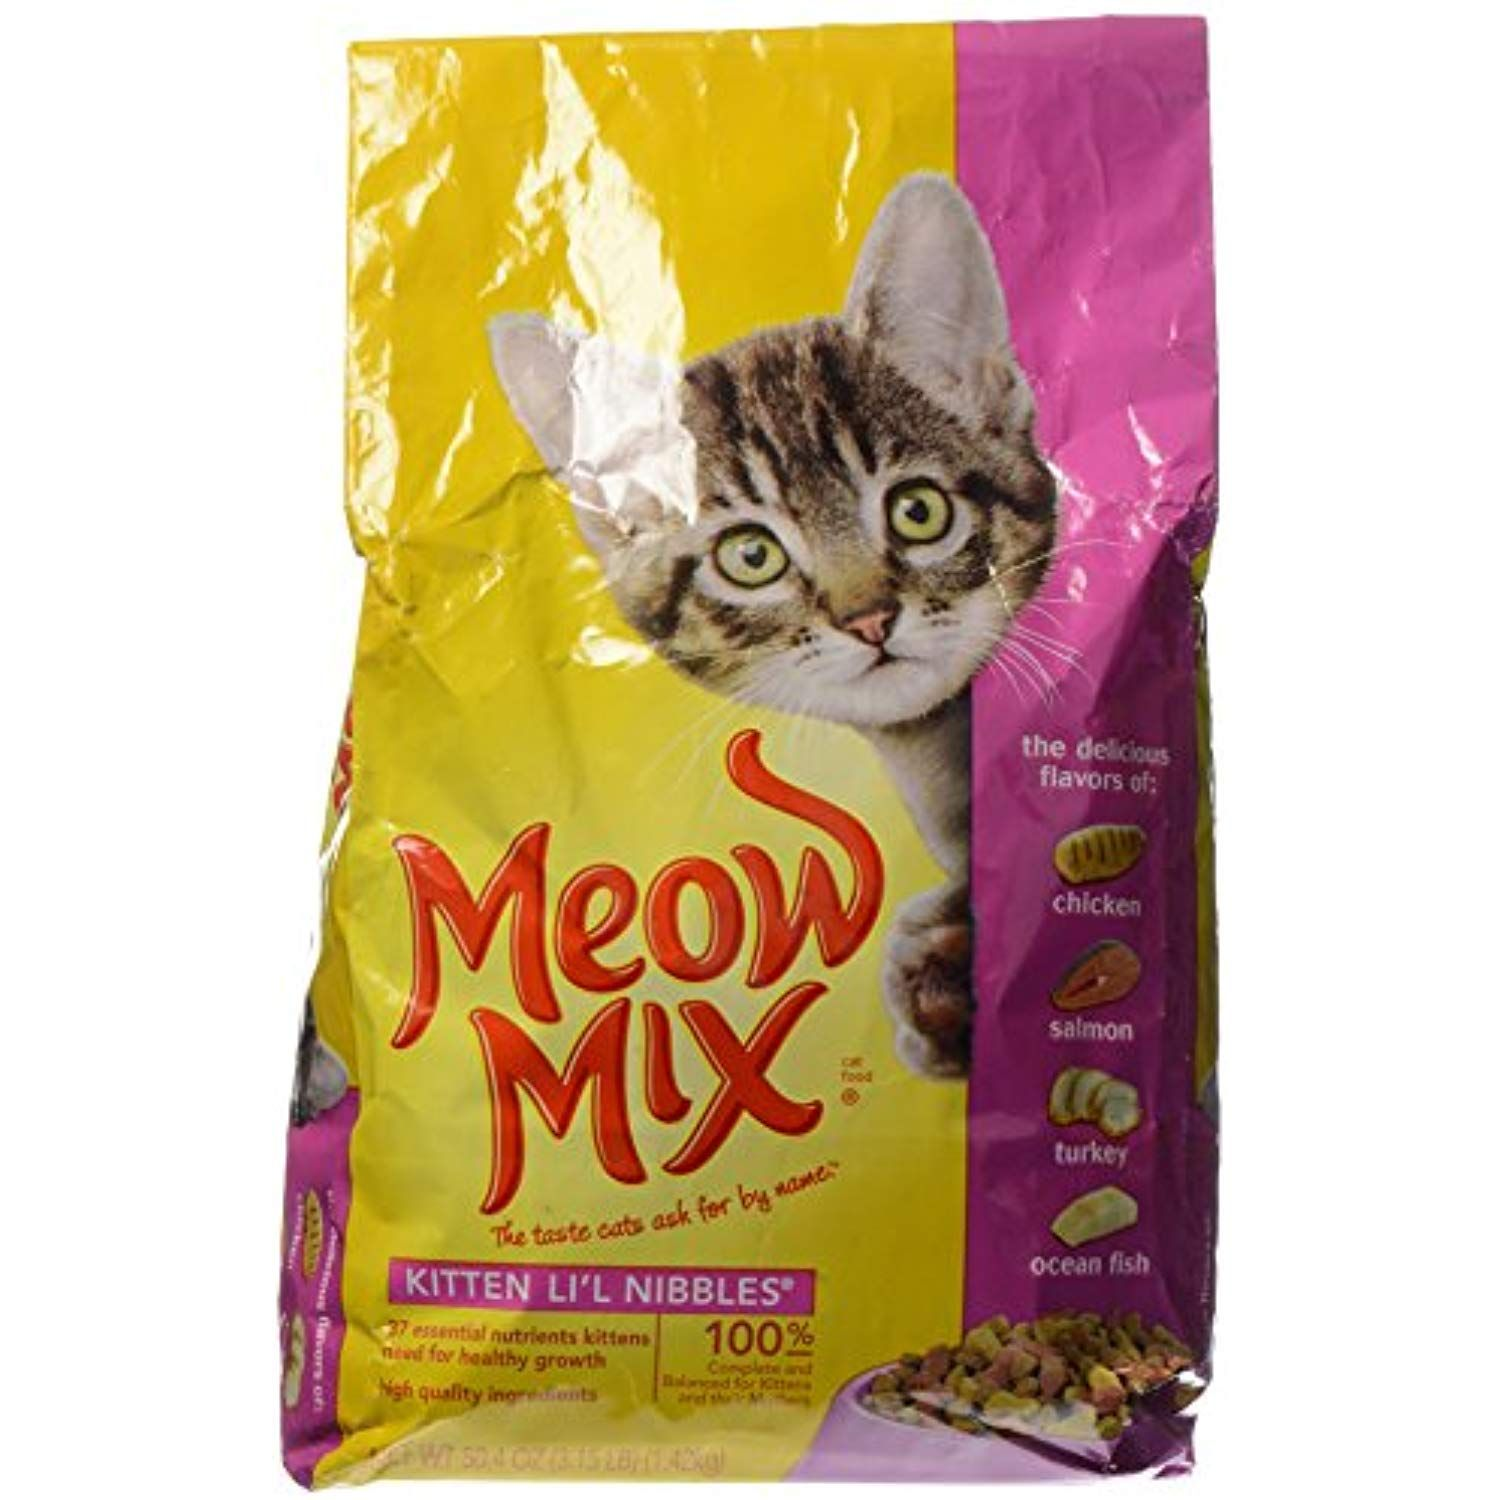 Meow Mix Cat Food Kitten Formula 3 15 Lb Read More Reviews Of The Product By Visiting The Link On The Image This Is An Af Kitten Formula Cat Food Kitten